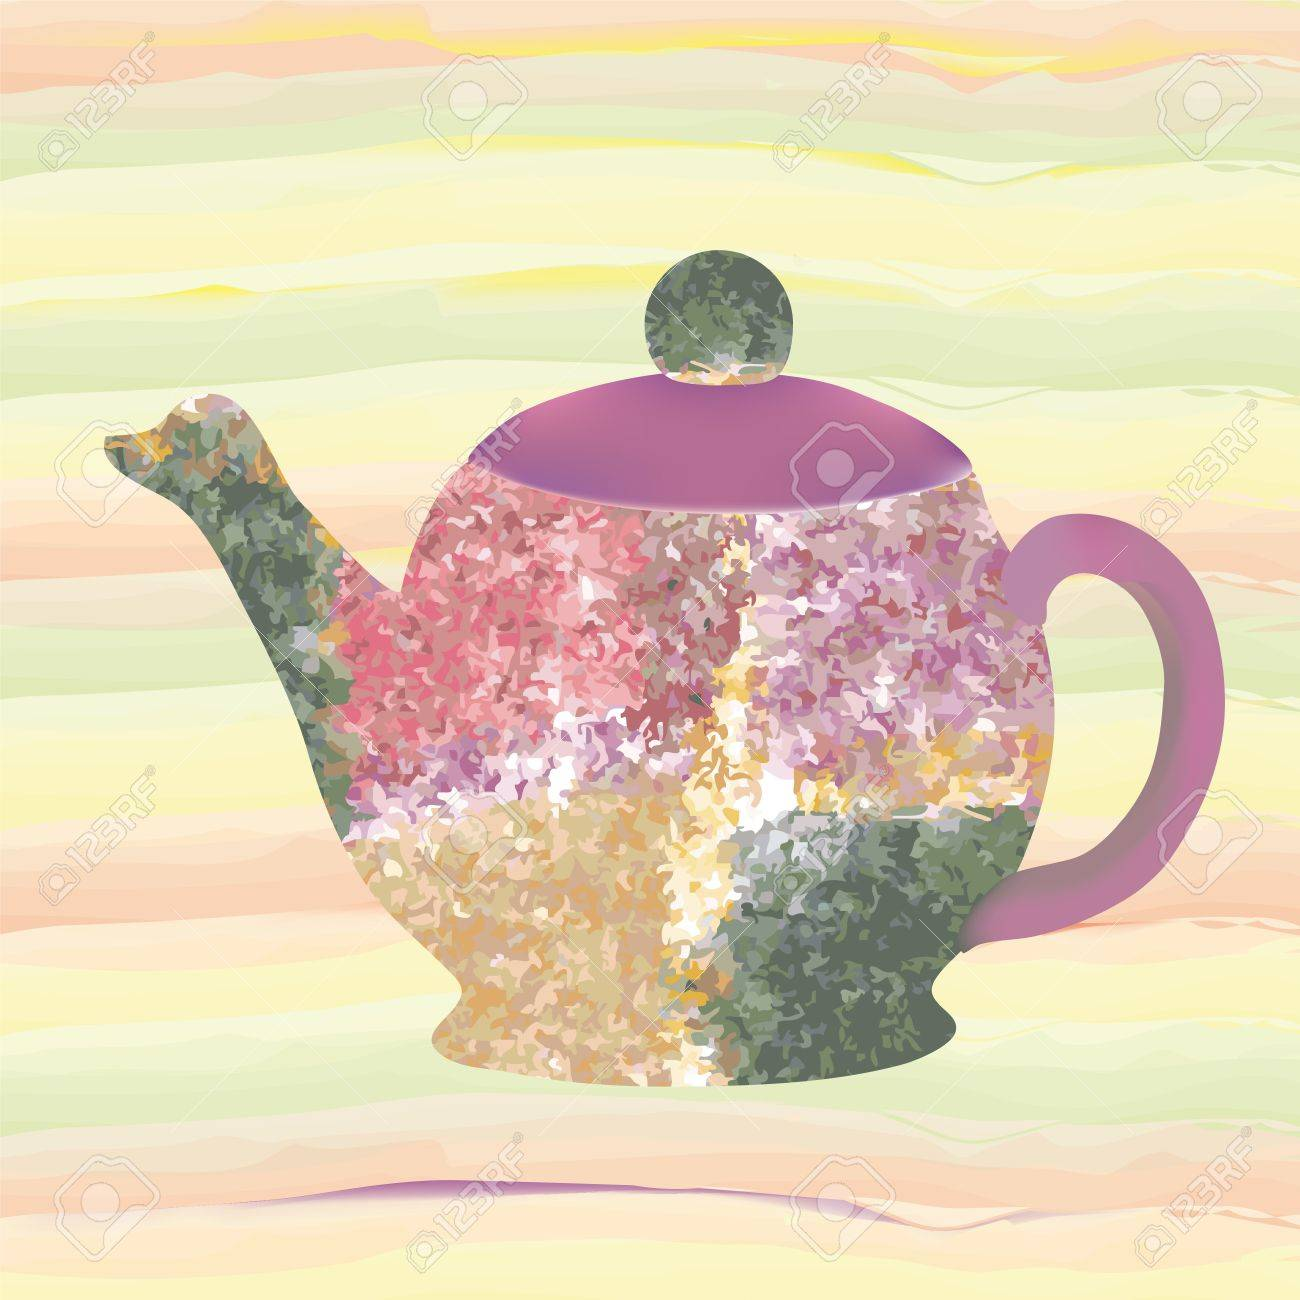 Teapot with decorative grunge stained pattern isolated on seamless striped colorful background Stock Vector - 16750224